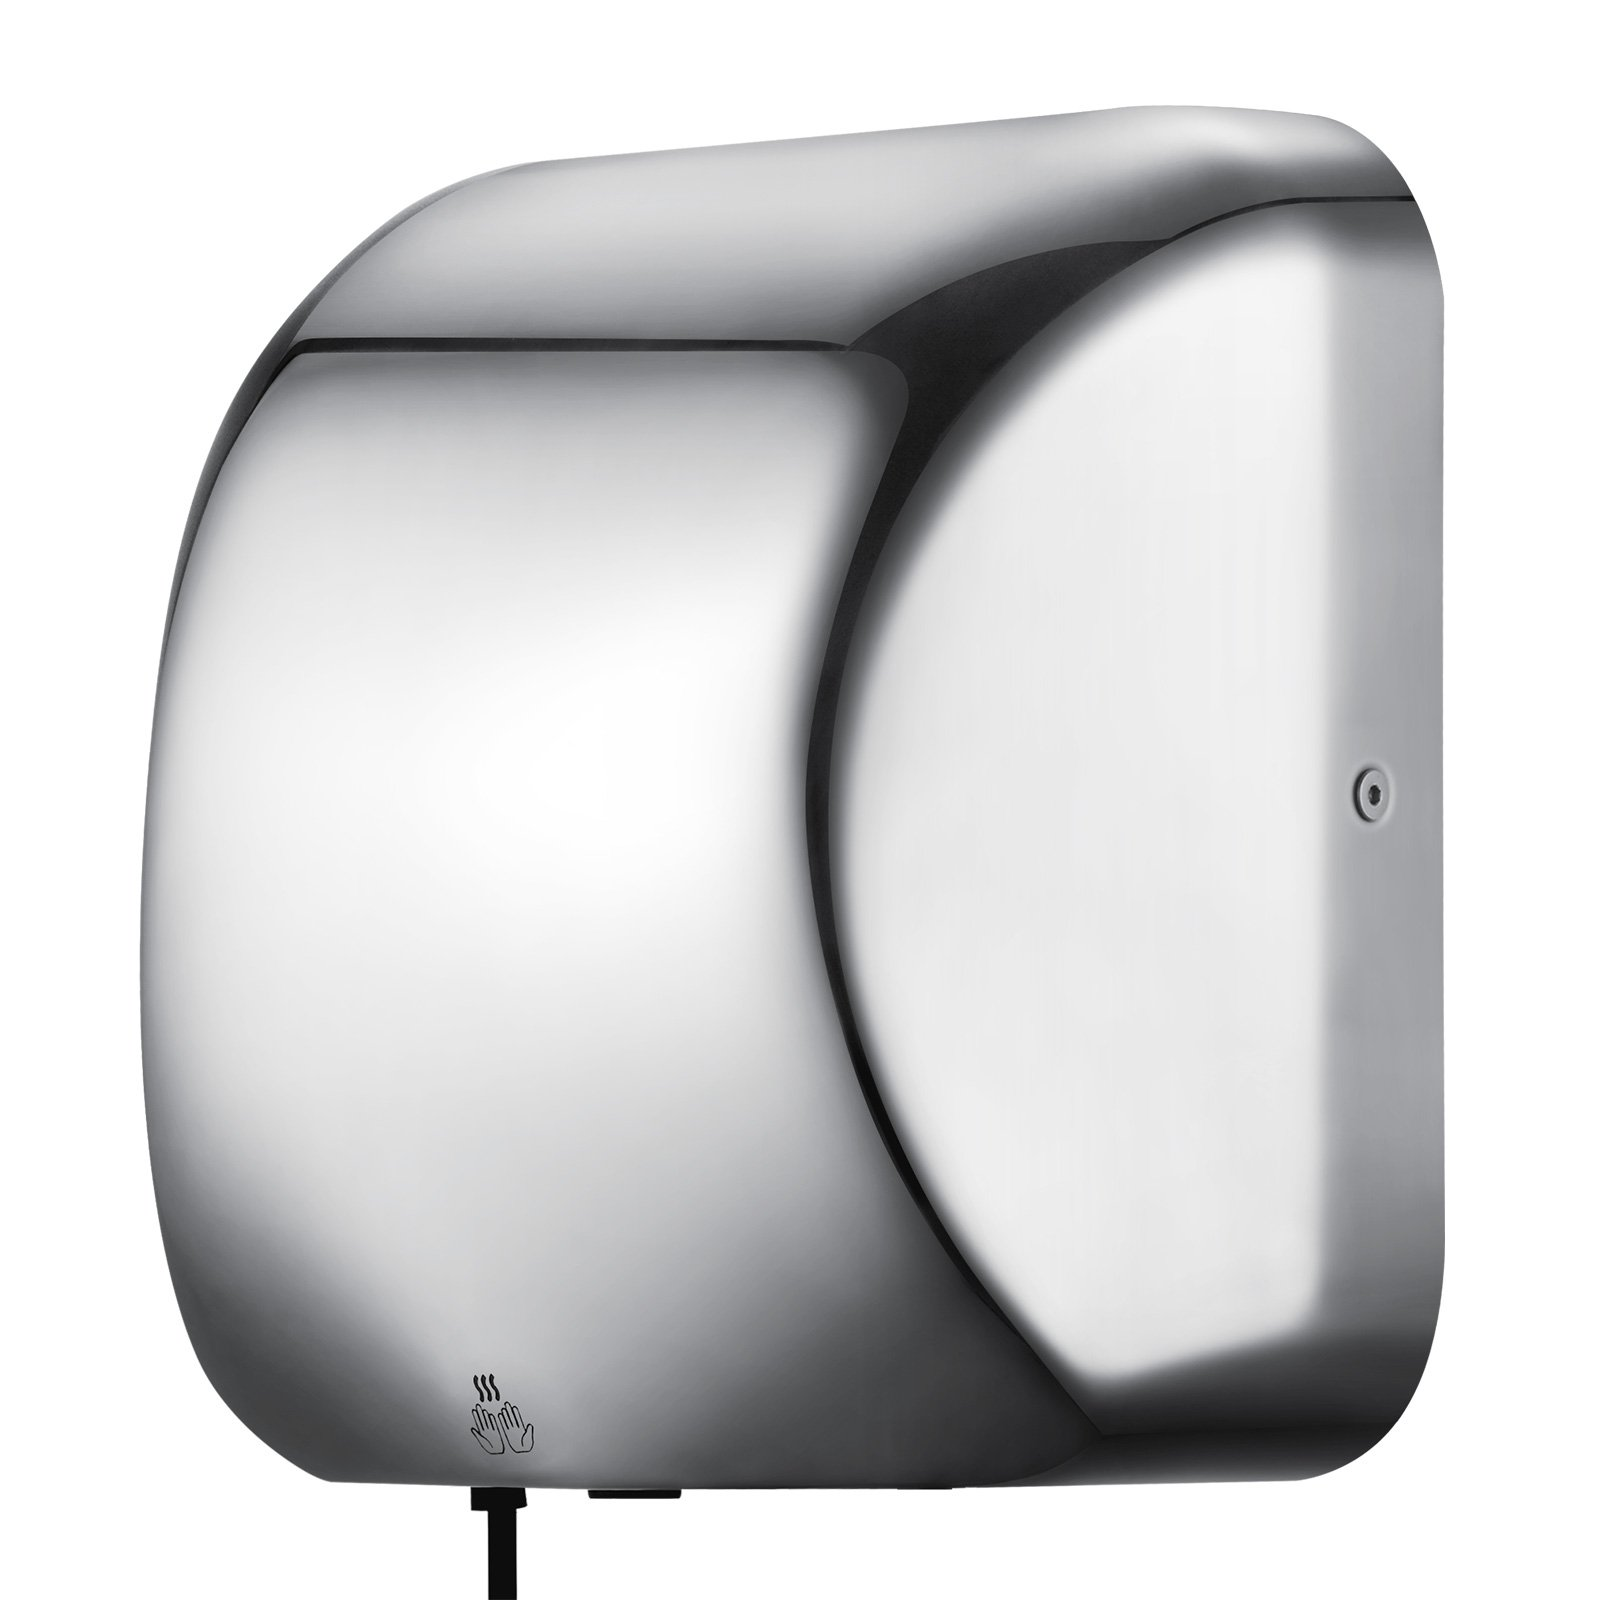 Mophorn 1800W Electric Hand Dryer Commercial Hand Dryer Automatic Sensor Stainless Steel Hand Dryer for Hotel Home Bathrooms (Picture Logo)